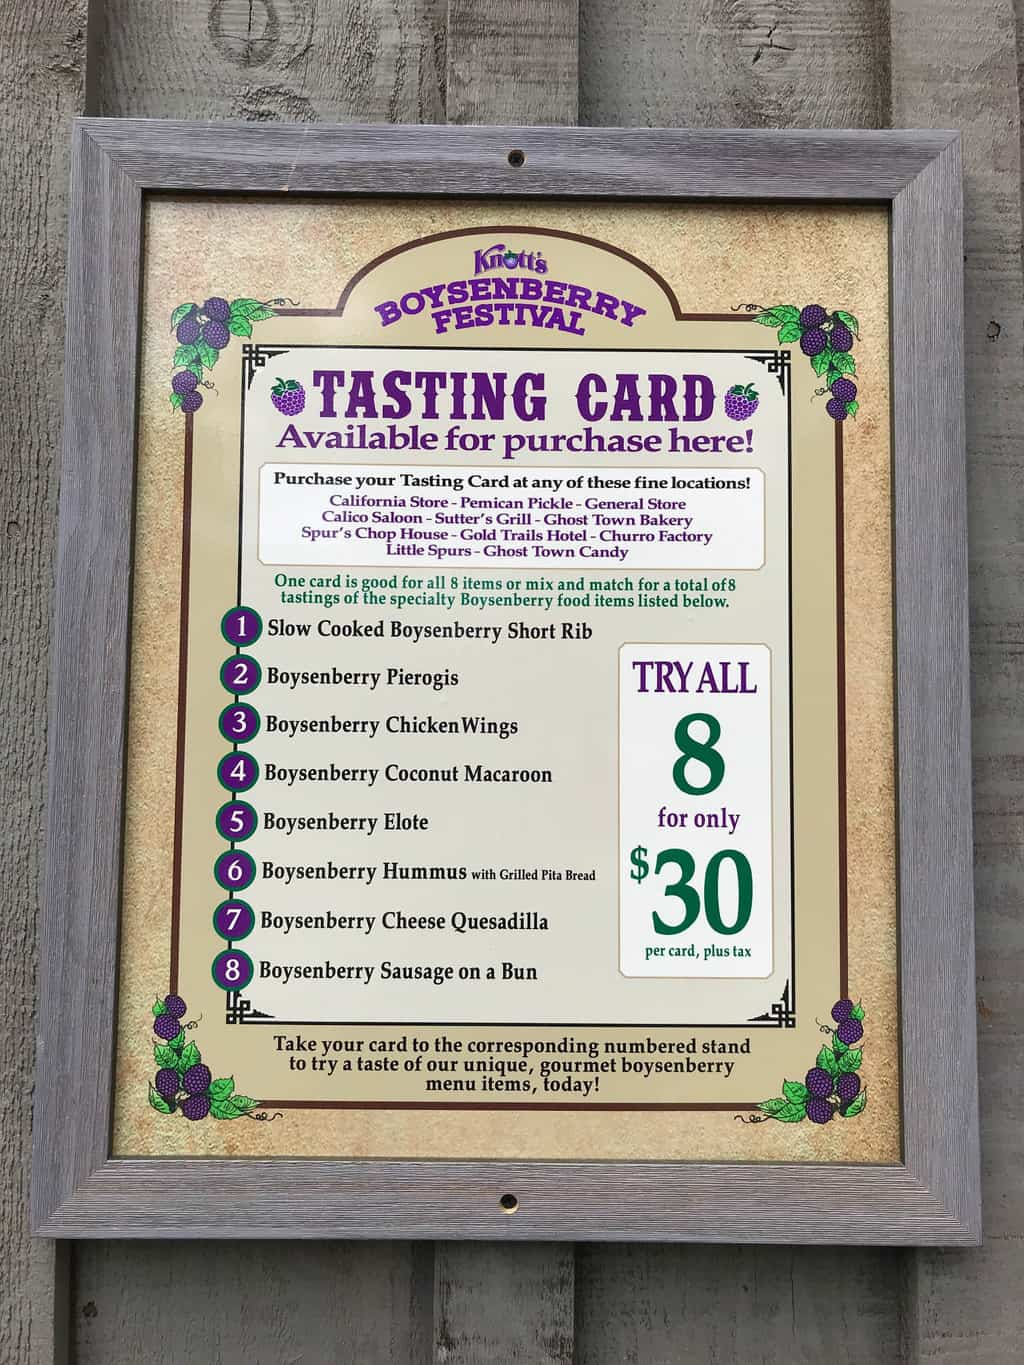 Boysenberry Festival Tasting Card at Knott's Boysenberry Festival